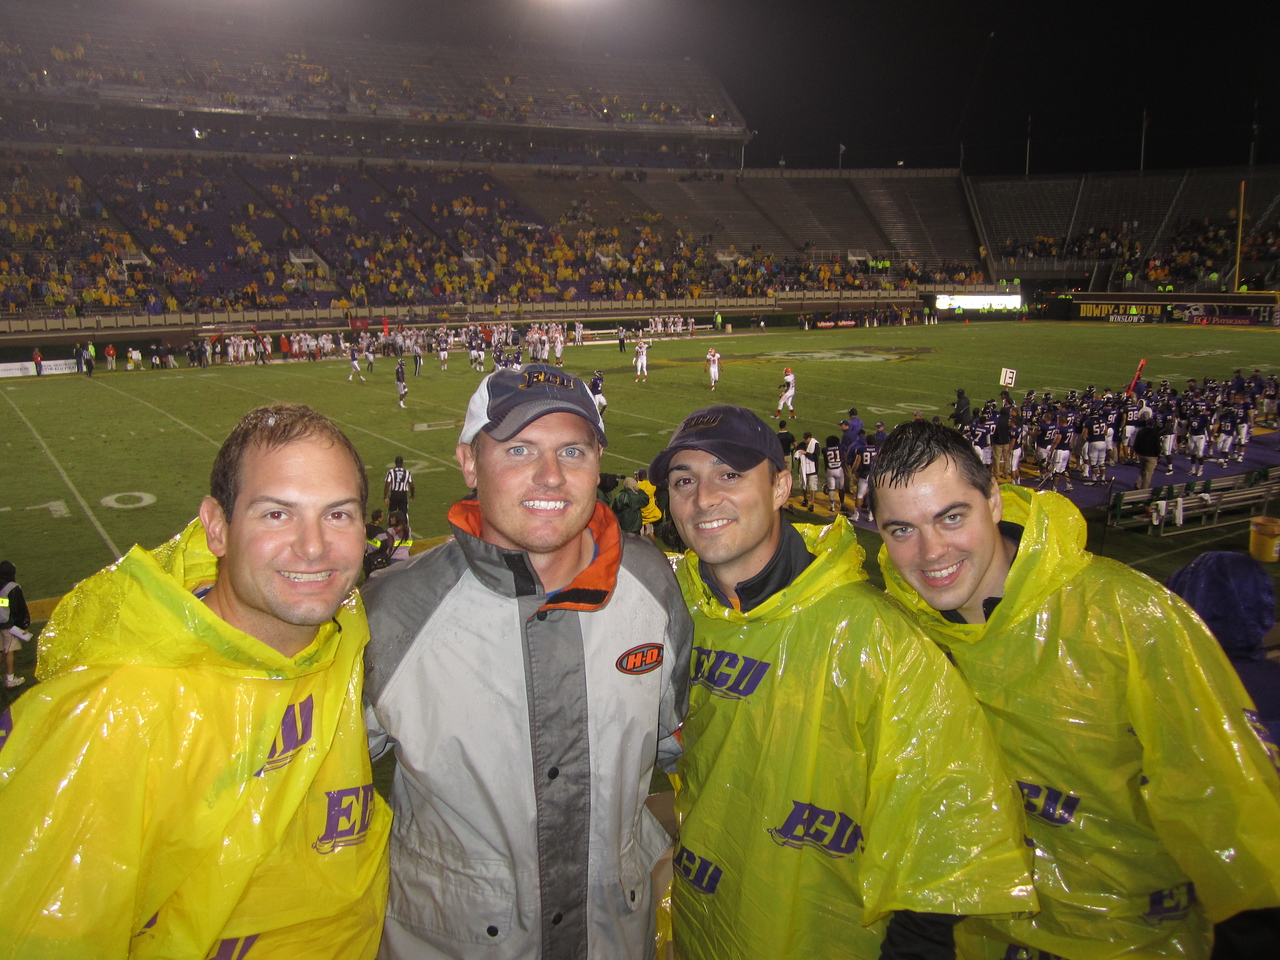 9/29 UTEP Back in the stadium during the 4th quarter Jon, JG, Chris, Kevin